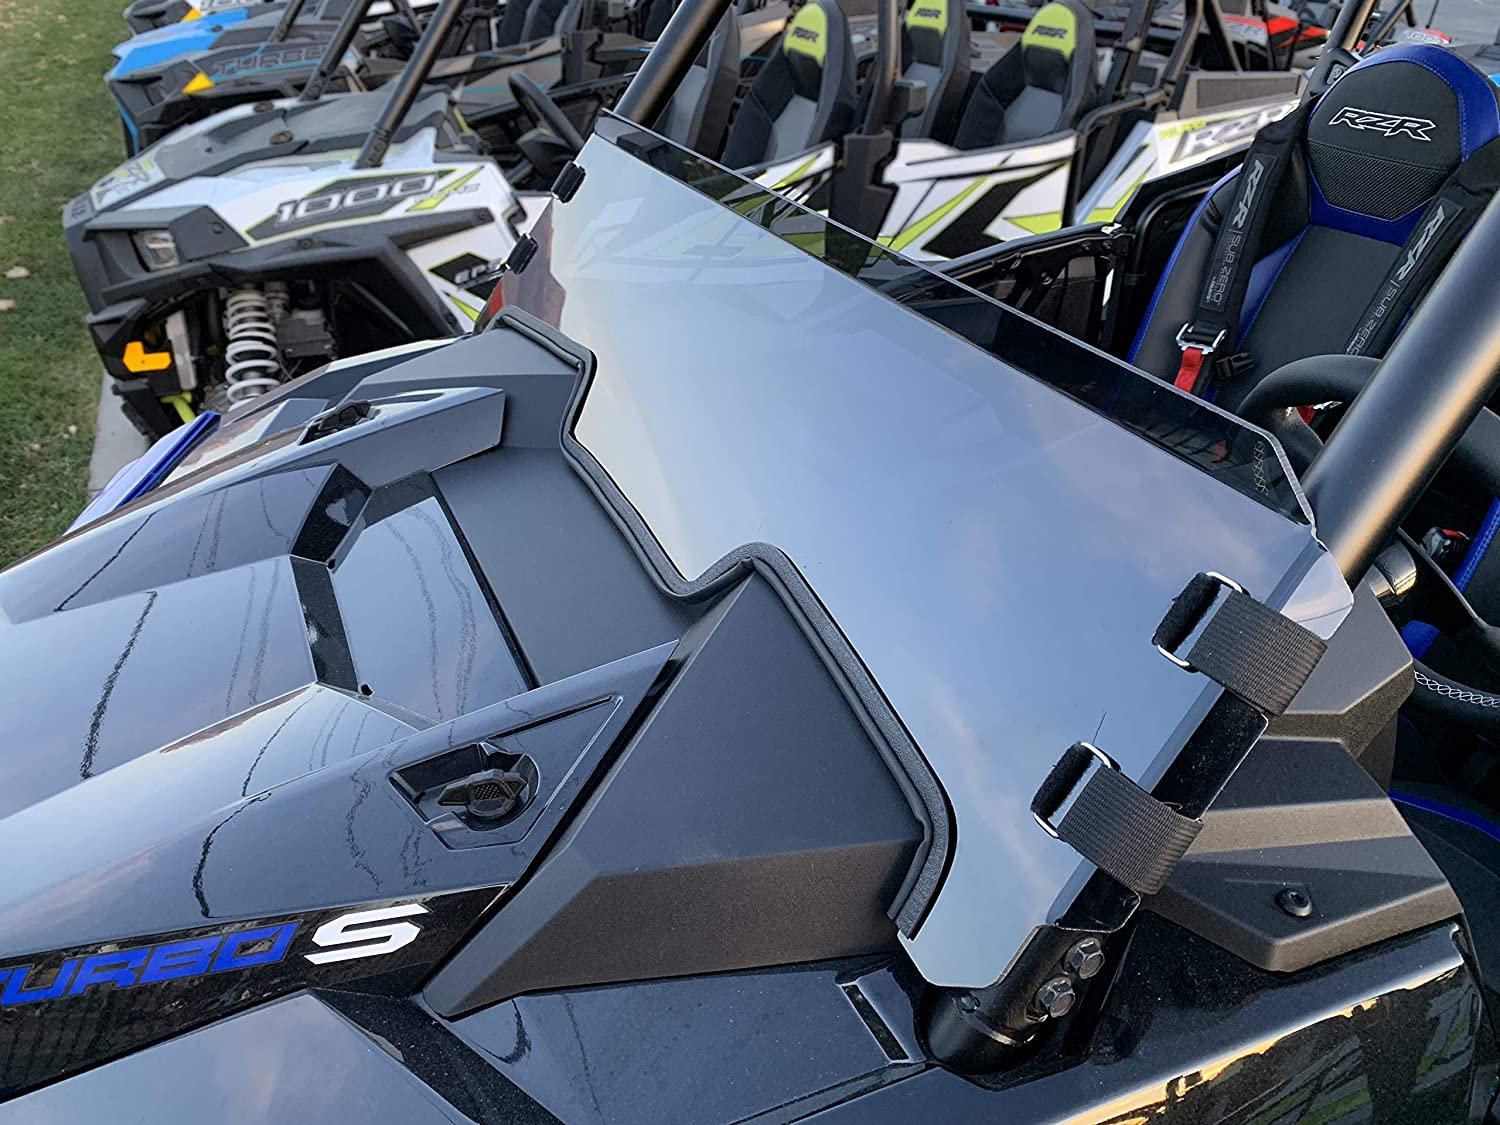 RZR 1000 clear Polaris RZR Polycarbonate Half Windshield with Quick Straps for RZR Turbo S and 2019 Turbo